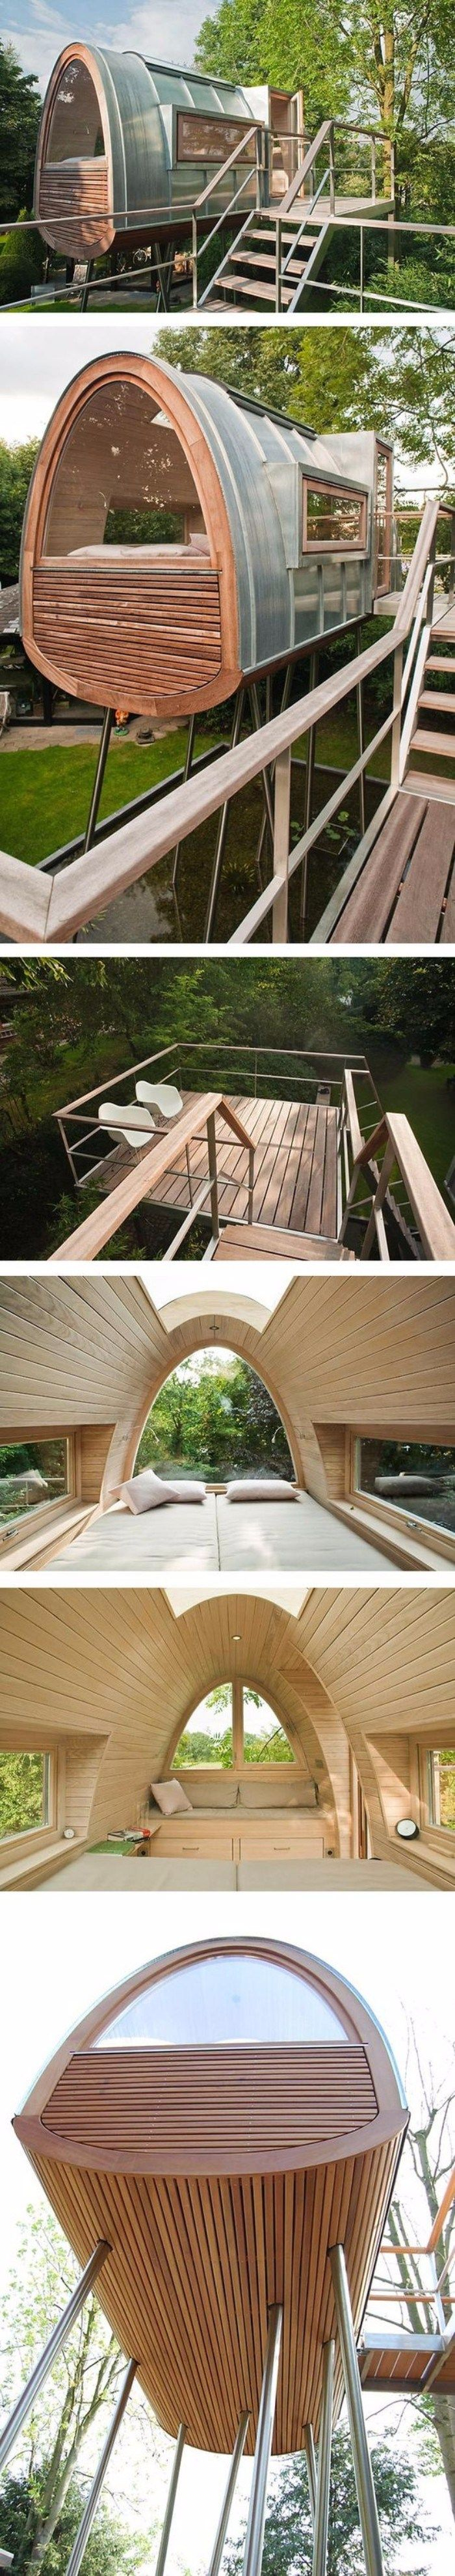 Unique Homes - Science has hinted that tube homes mimic the tranquility of a womb – this unique tube home brings its inhabitant closer to their very first home – the womb.